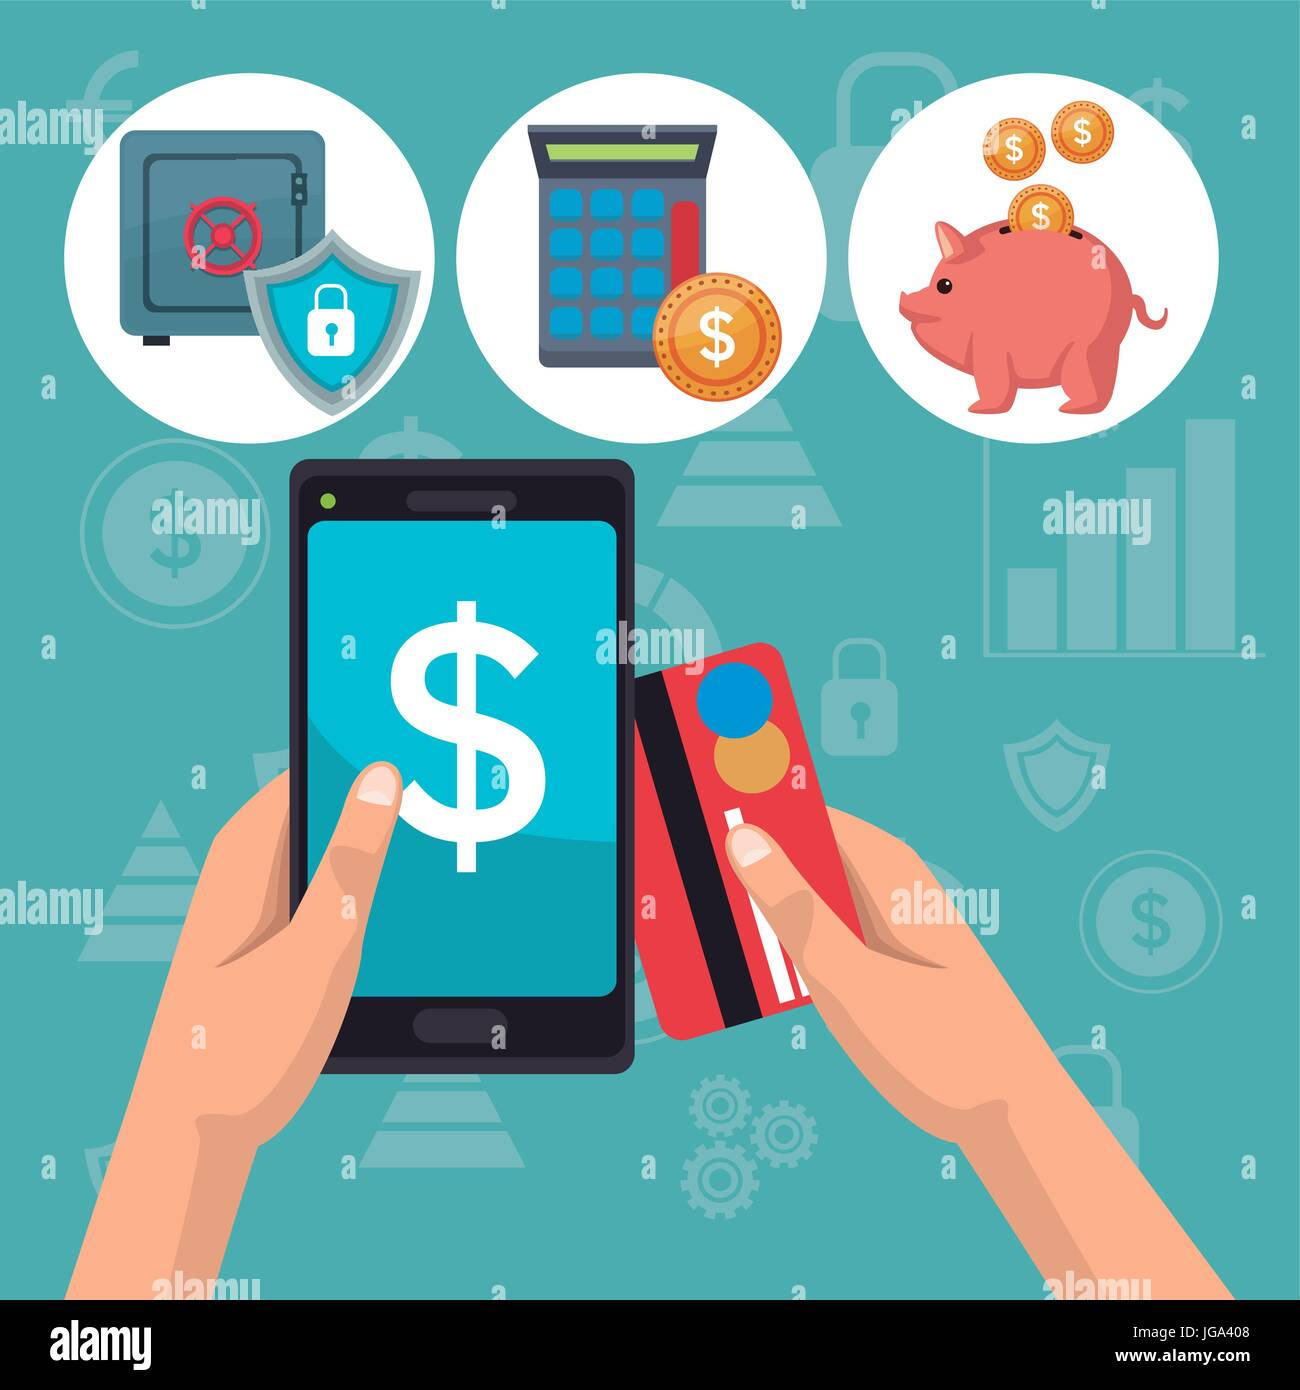 color background analytics investment icons and hand holding a smartphone with debt card - Stock Vector